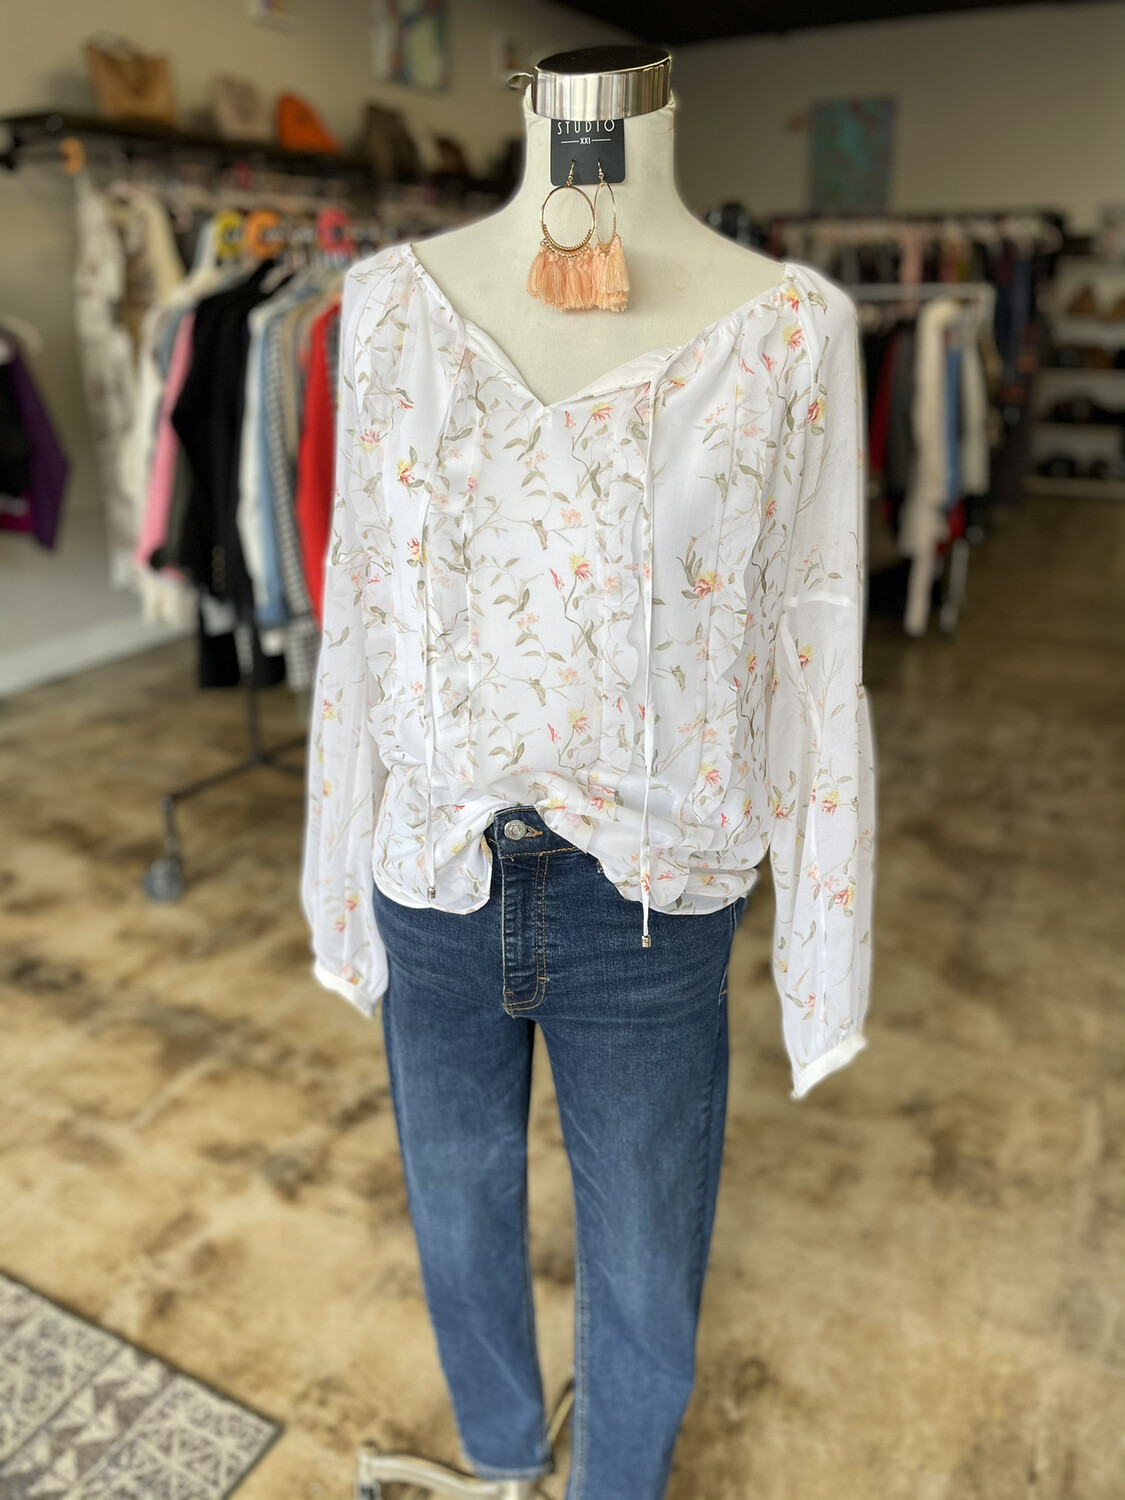 White House Black Market White Floral Blouse - Size 8